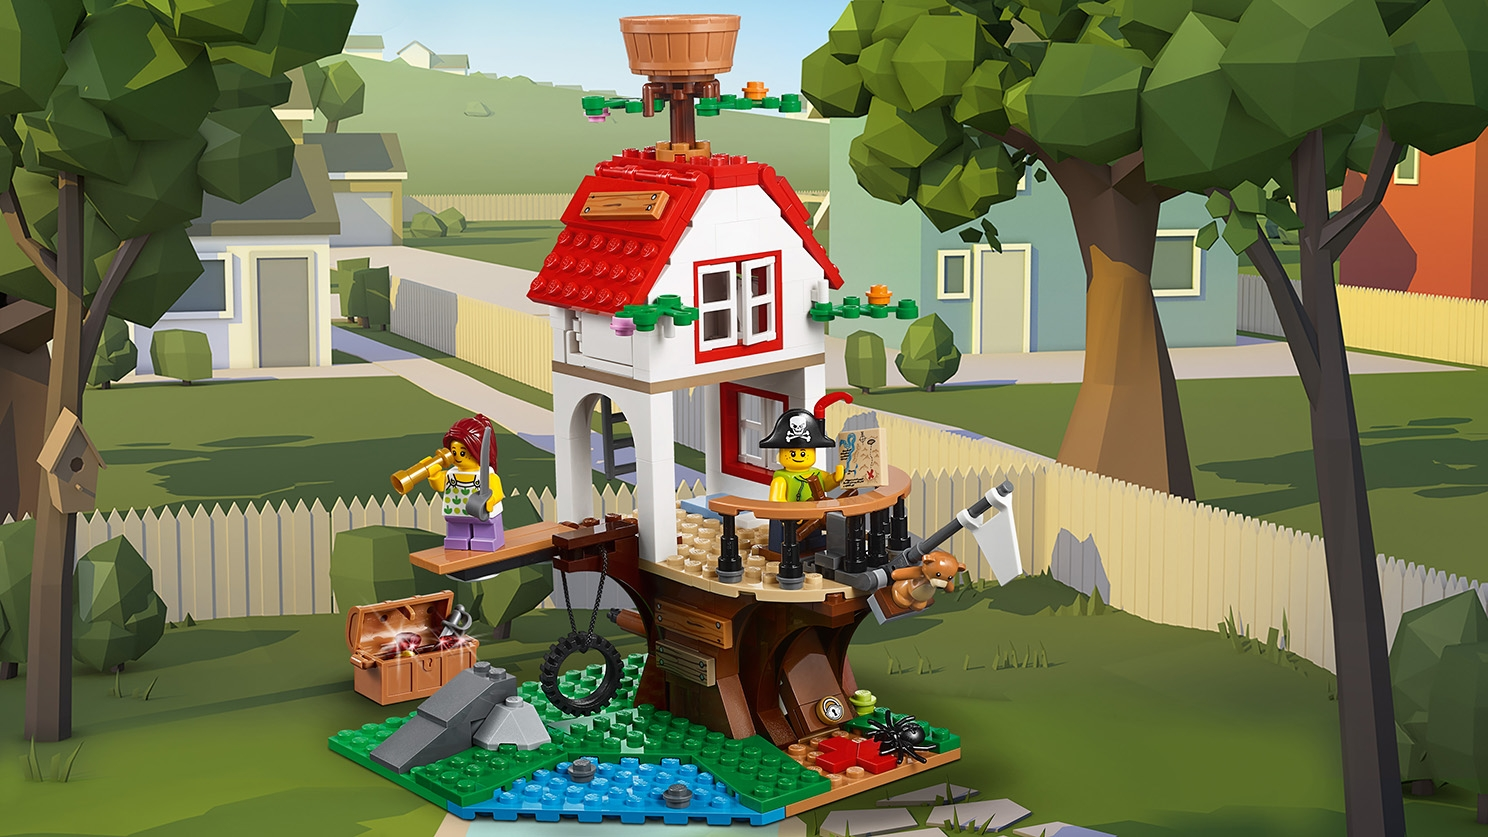 LEGO Creator 3 in 1 - 31078 Tree house Adventures - Build a fun pirate themed tree house with a treasure map, treasure chest, a crow's nest and place to walk the plank.